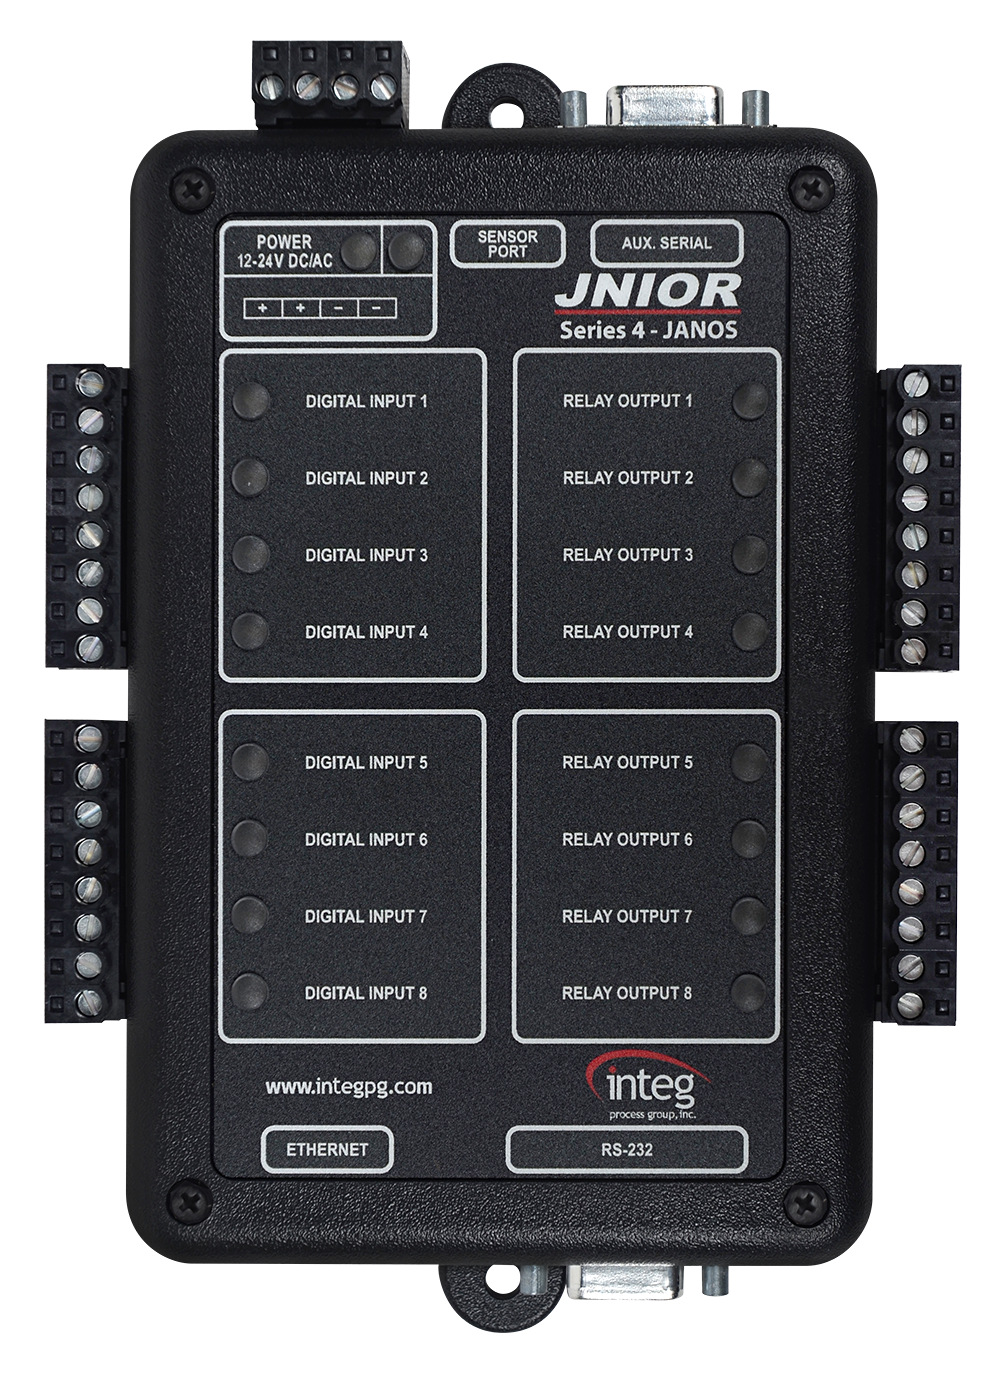 JNIOR Model 410 - 8 DIN / 8 ROUT / RS-485 Capable